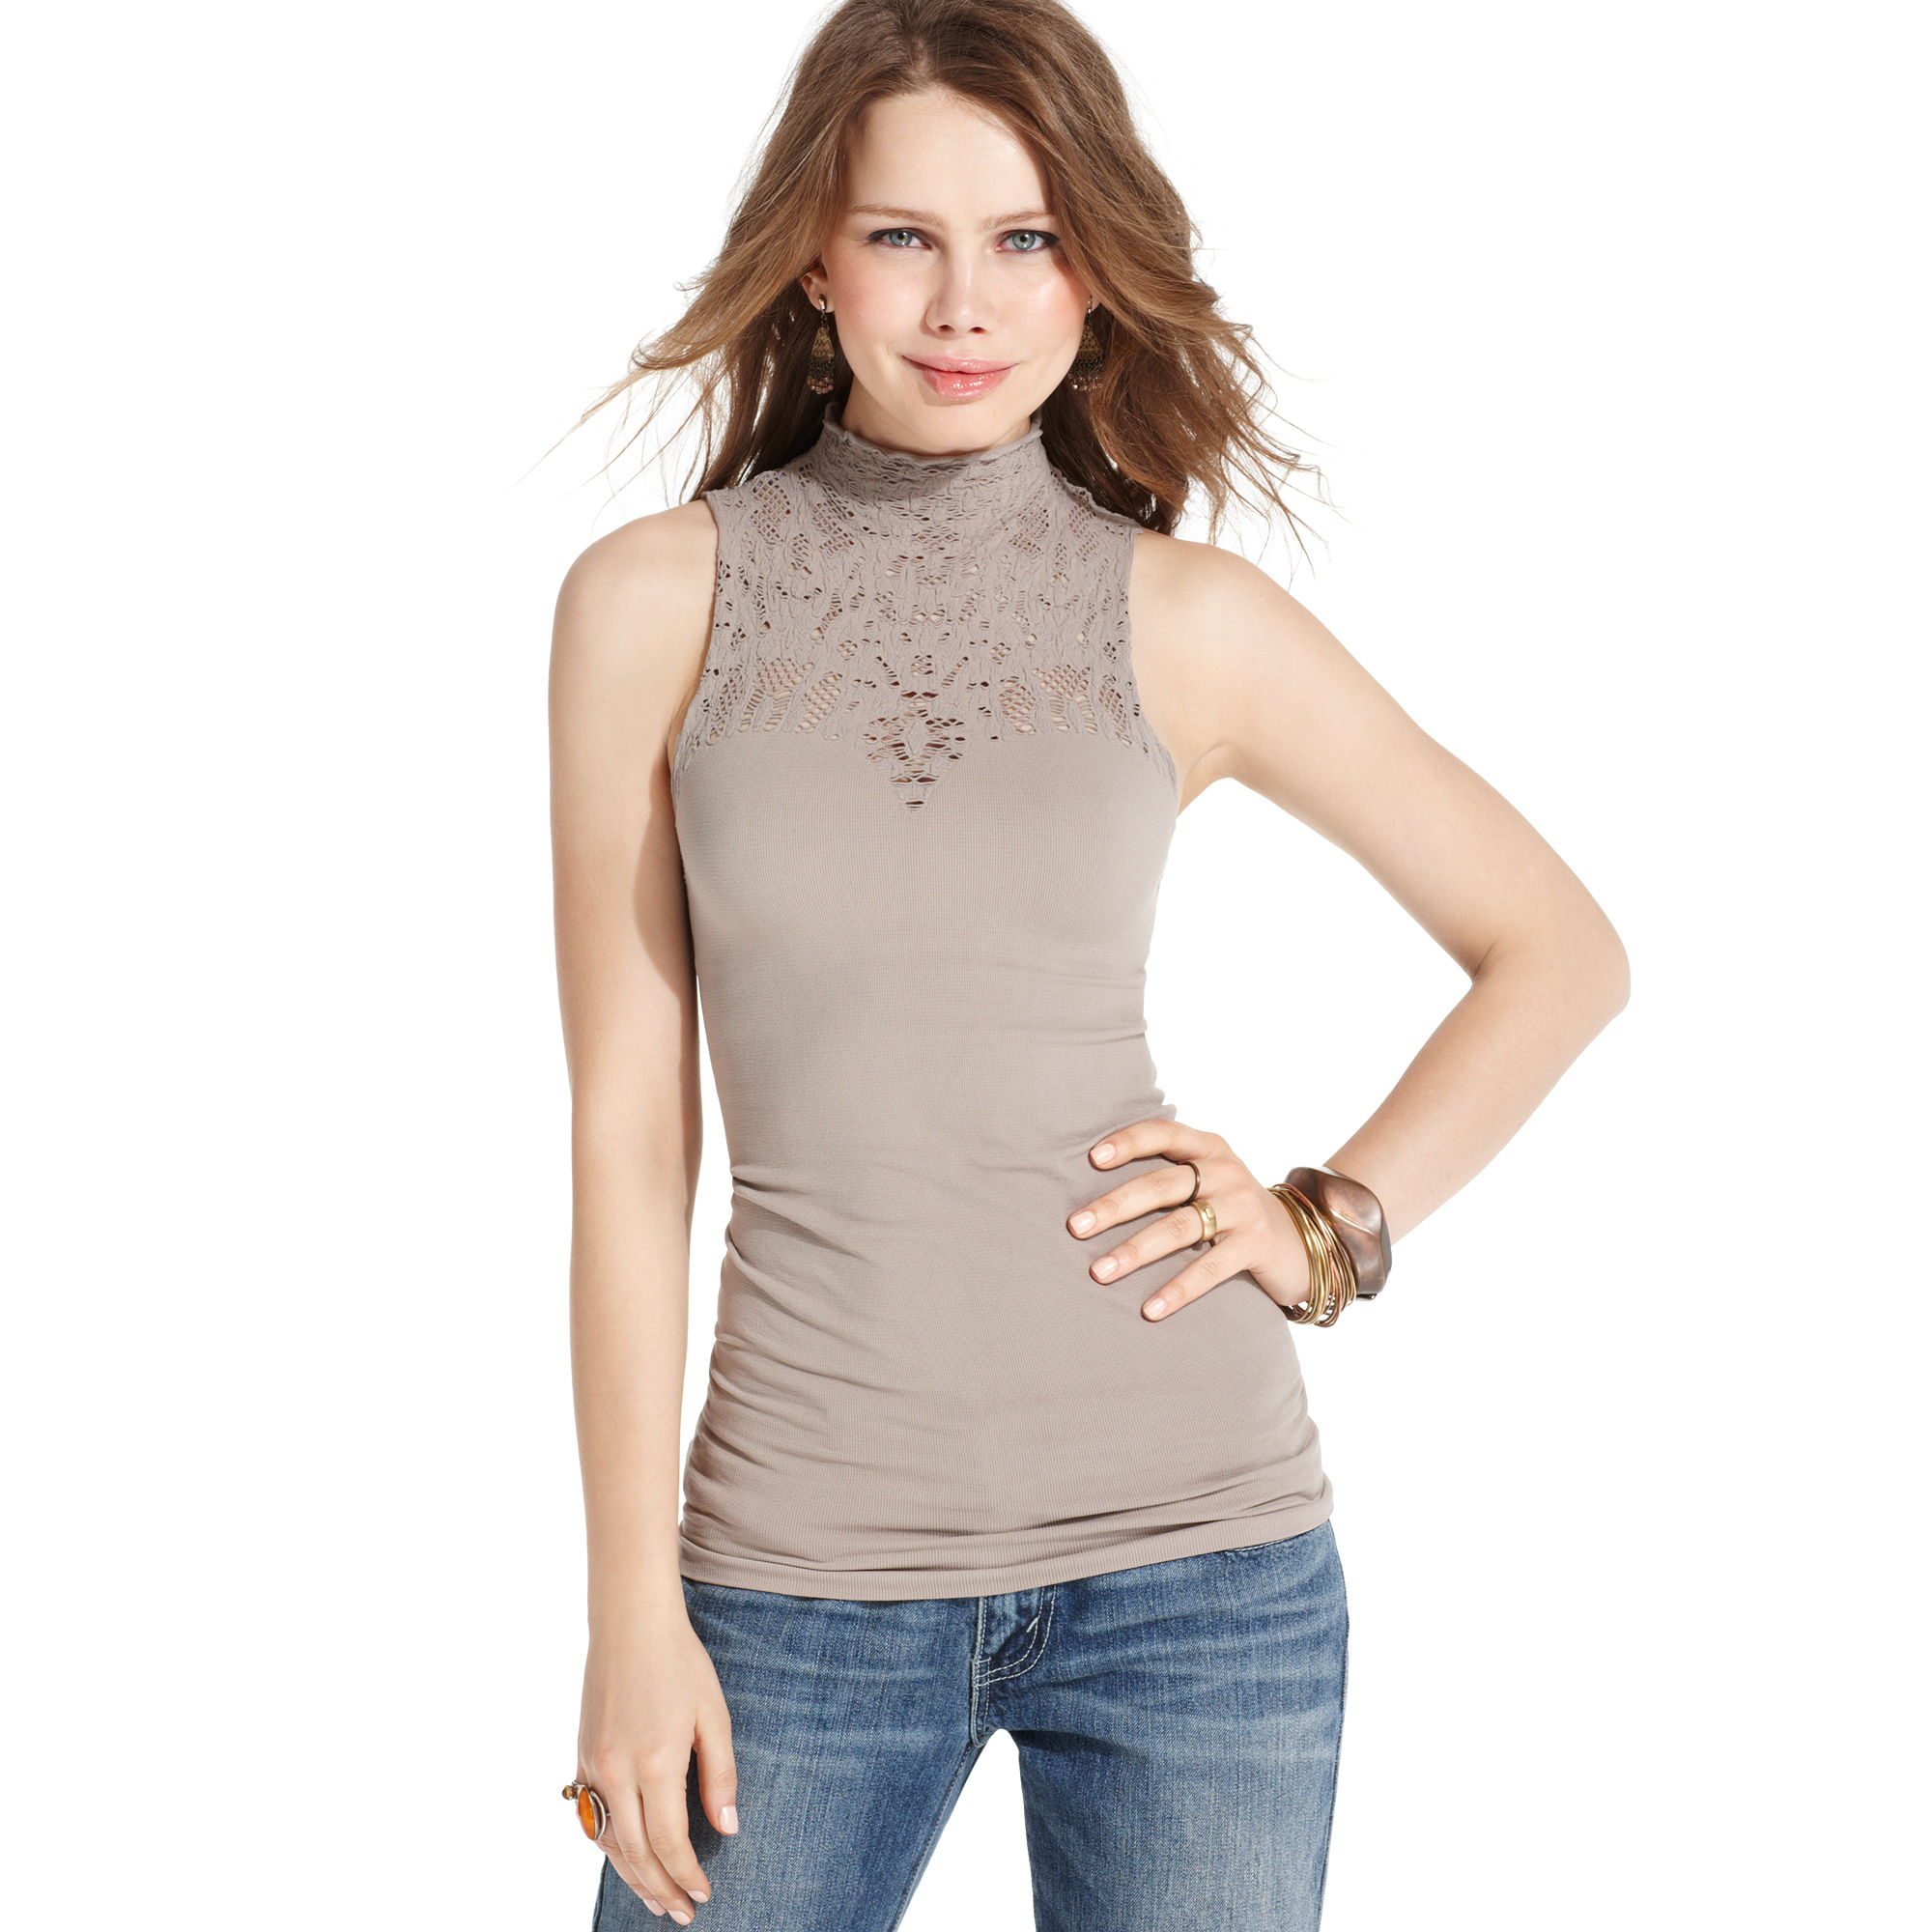 64991236a Free People Sleeveless Lace Mock-turtleneck in Natural - Lyst